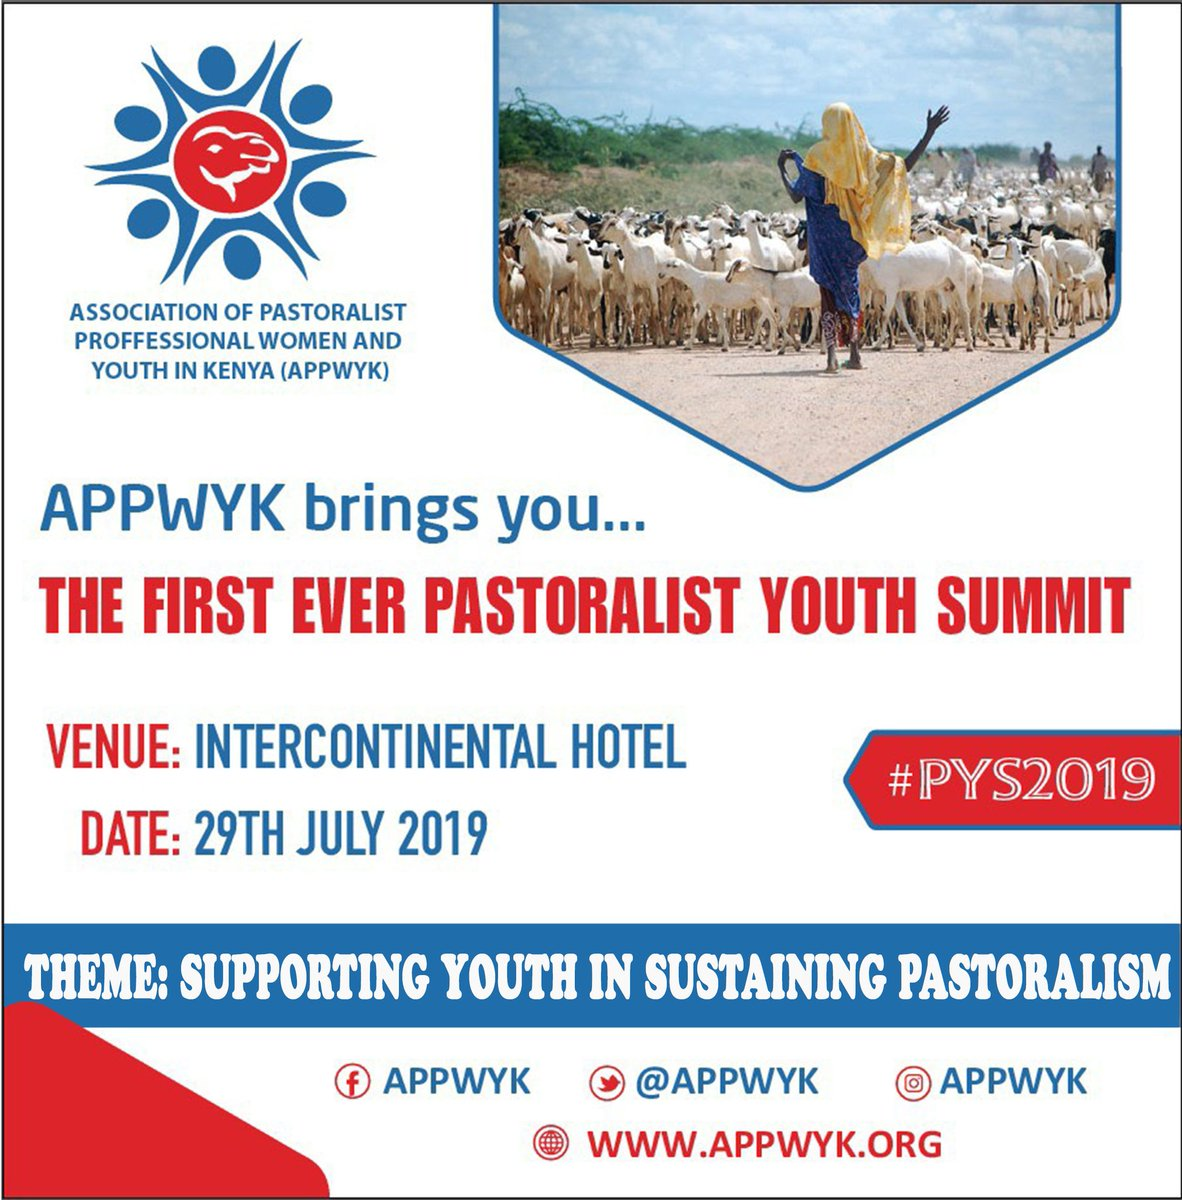 pys2019 hashtag on Twitter